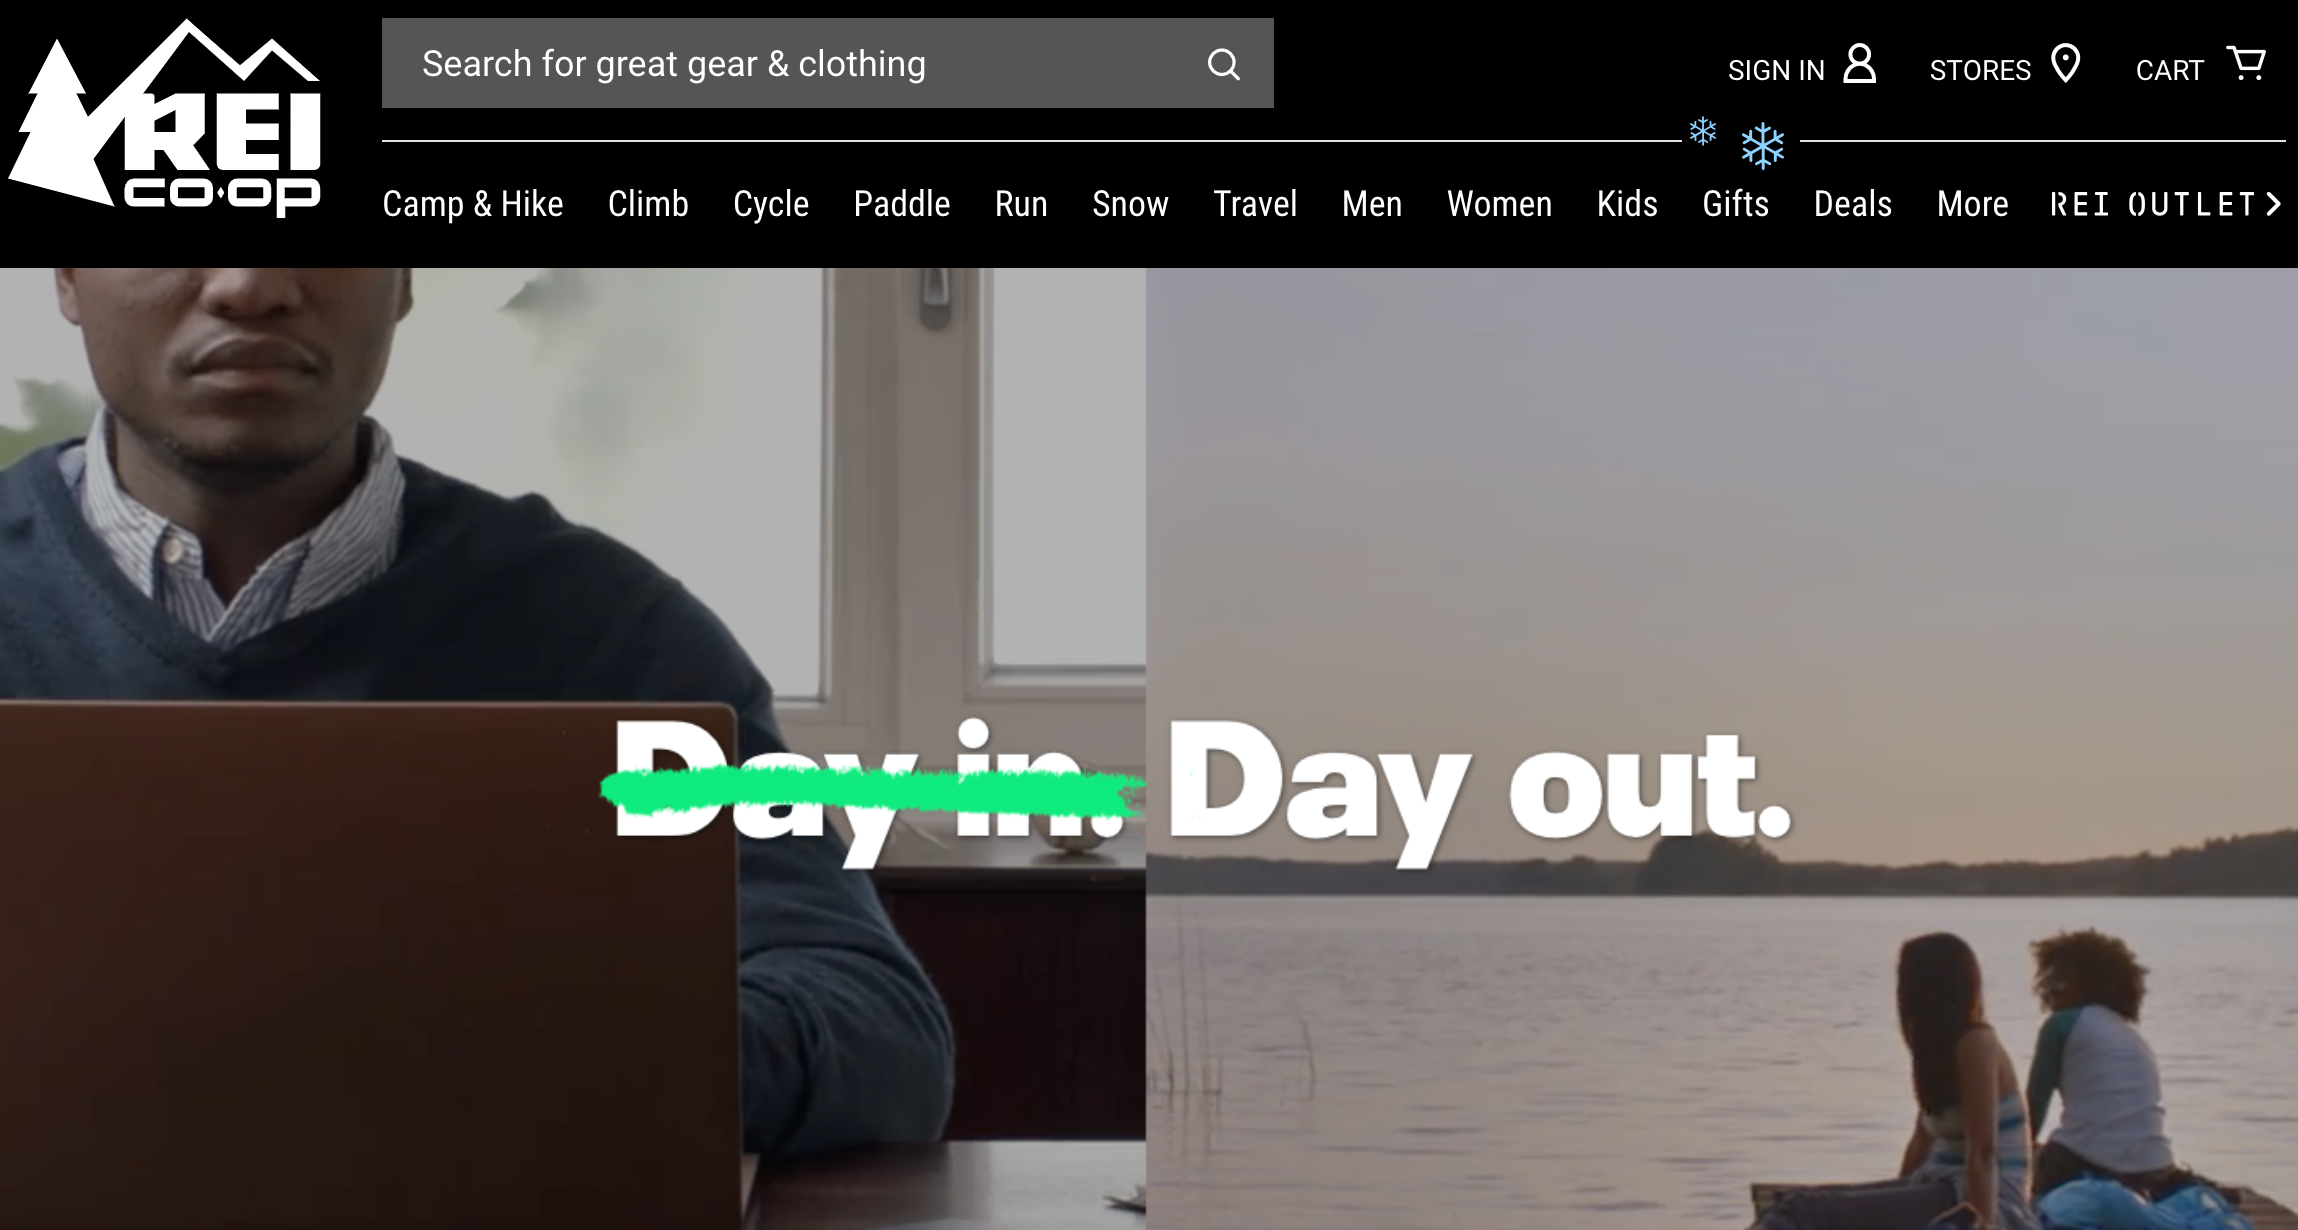 Retail Marketing Calendar 2019: REI Black Friday Day In vs Day Out